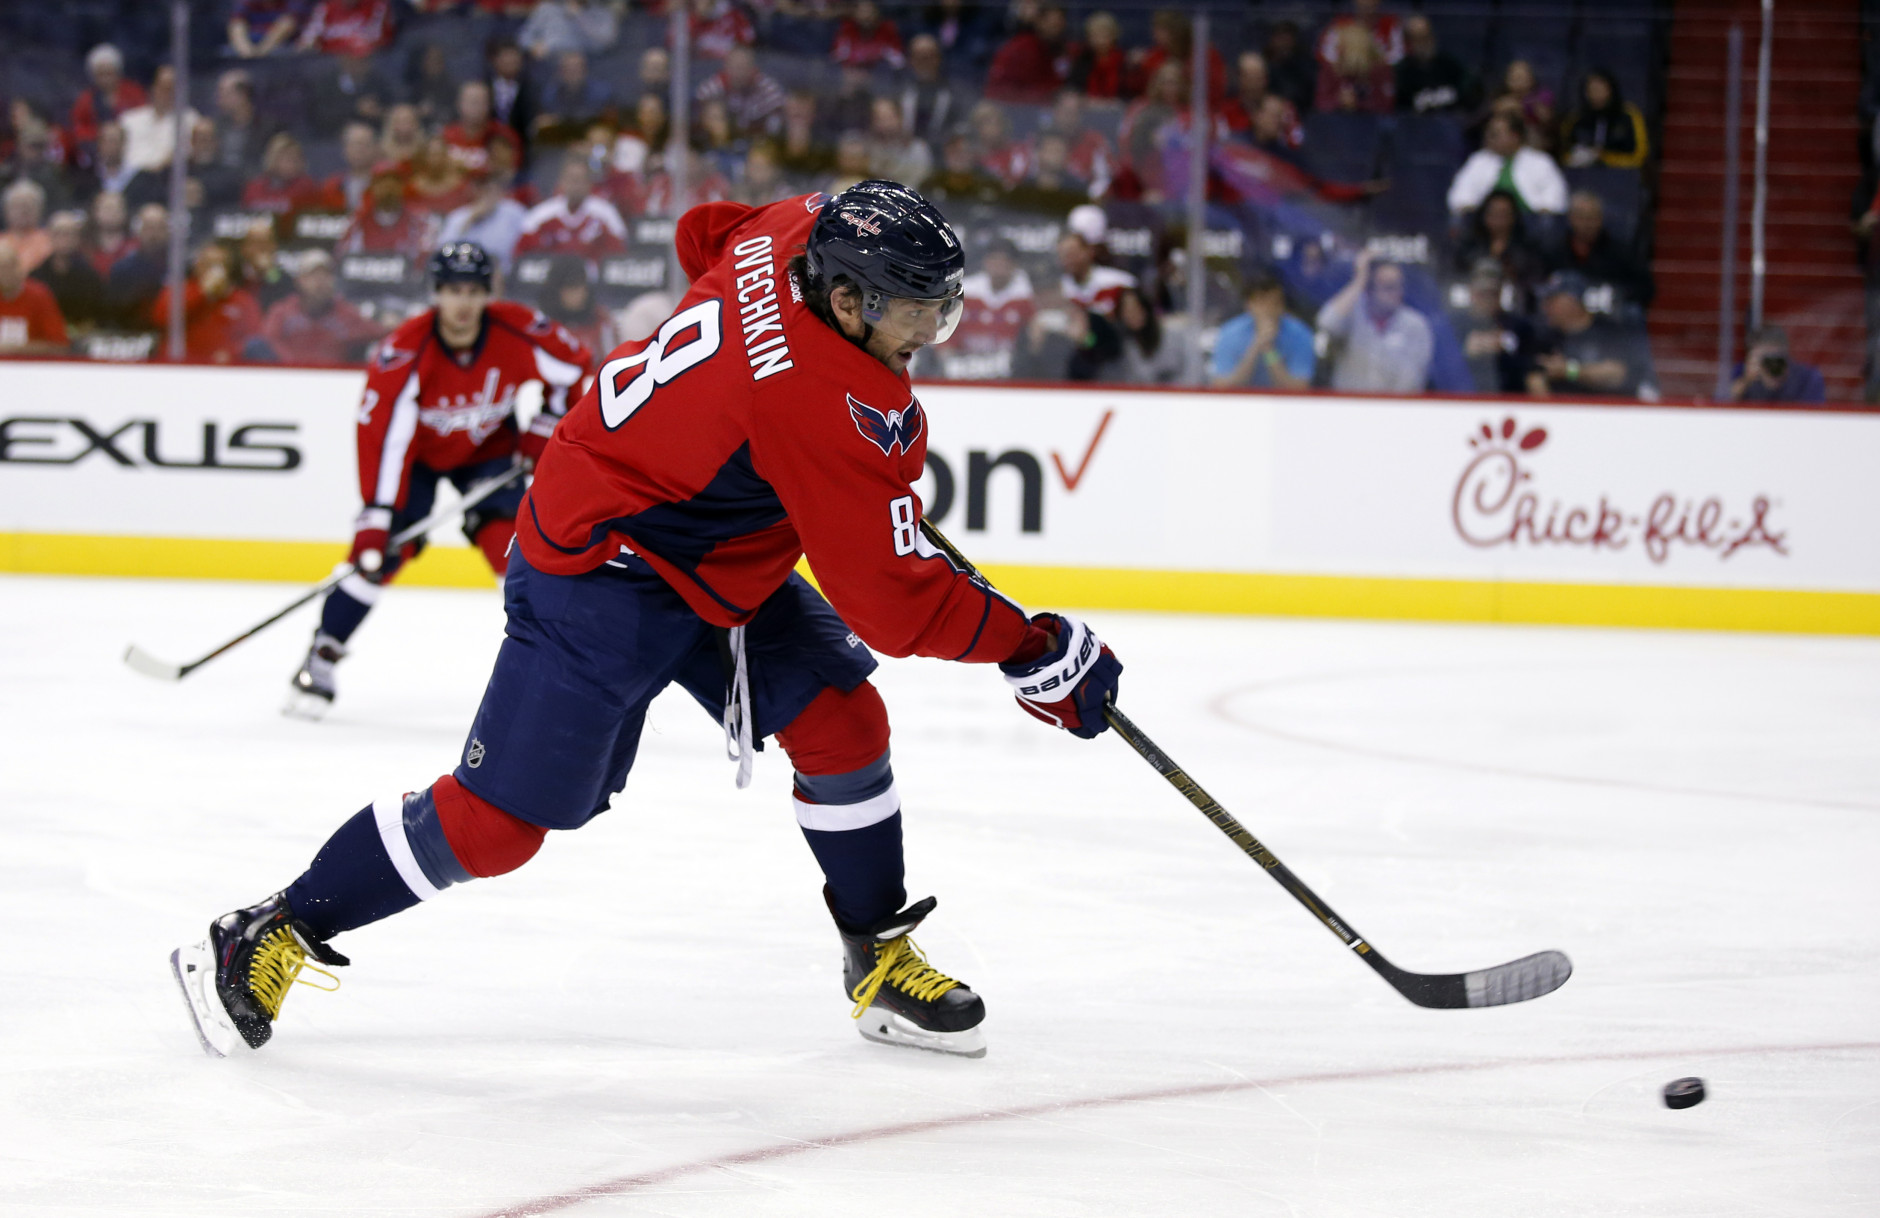 Washington Capitals left wing Alex Ovechkin (8), from Russia, shoots the puck in the first period of an NHL hockey game against the Dallas Stars, Thursday, Nov. 19, 2015, in Washington. (AP Photo/Alex Brandon)